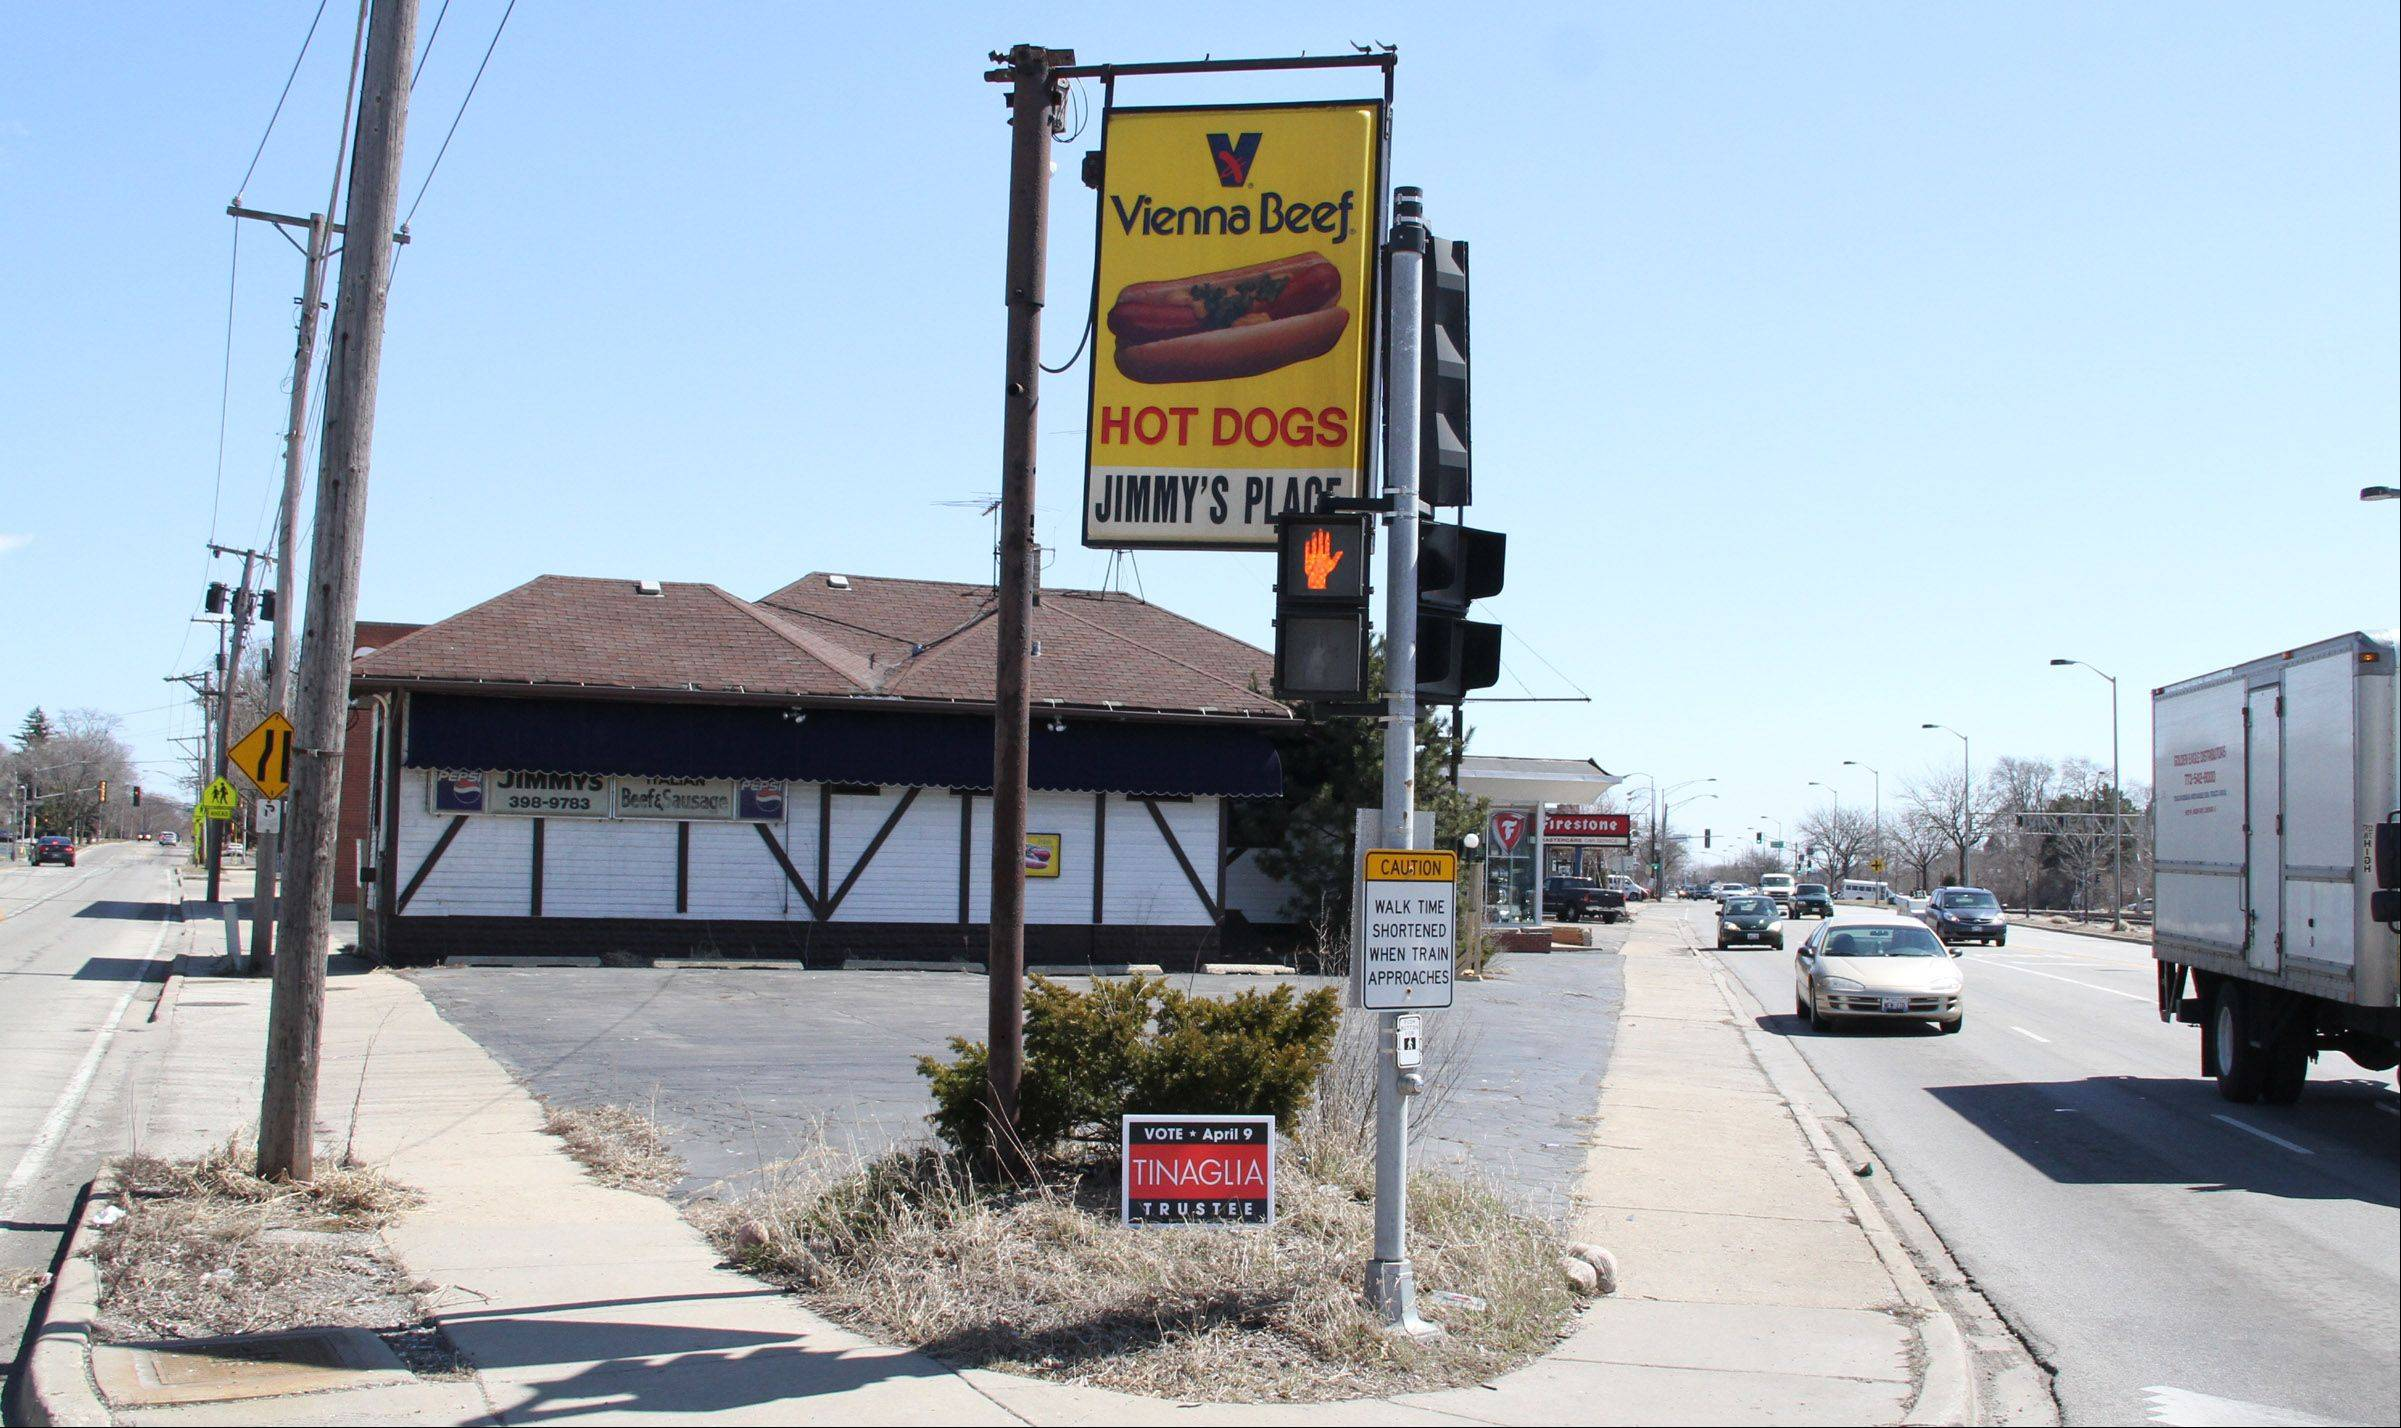 The site of the former Jimmy's Place, a staple in Arlington Heights for more than 50 years before it closed in 2011, will reopen later this year as Big Ang's. The new restaurant will feature hot dogs, sandwiches, fries and Italian Ice.